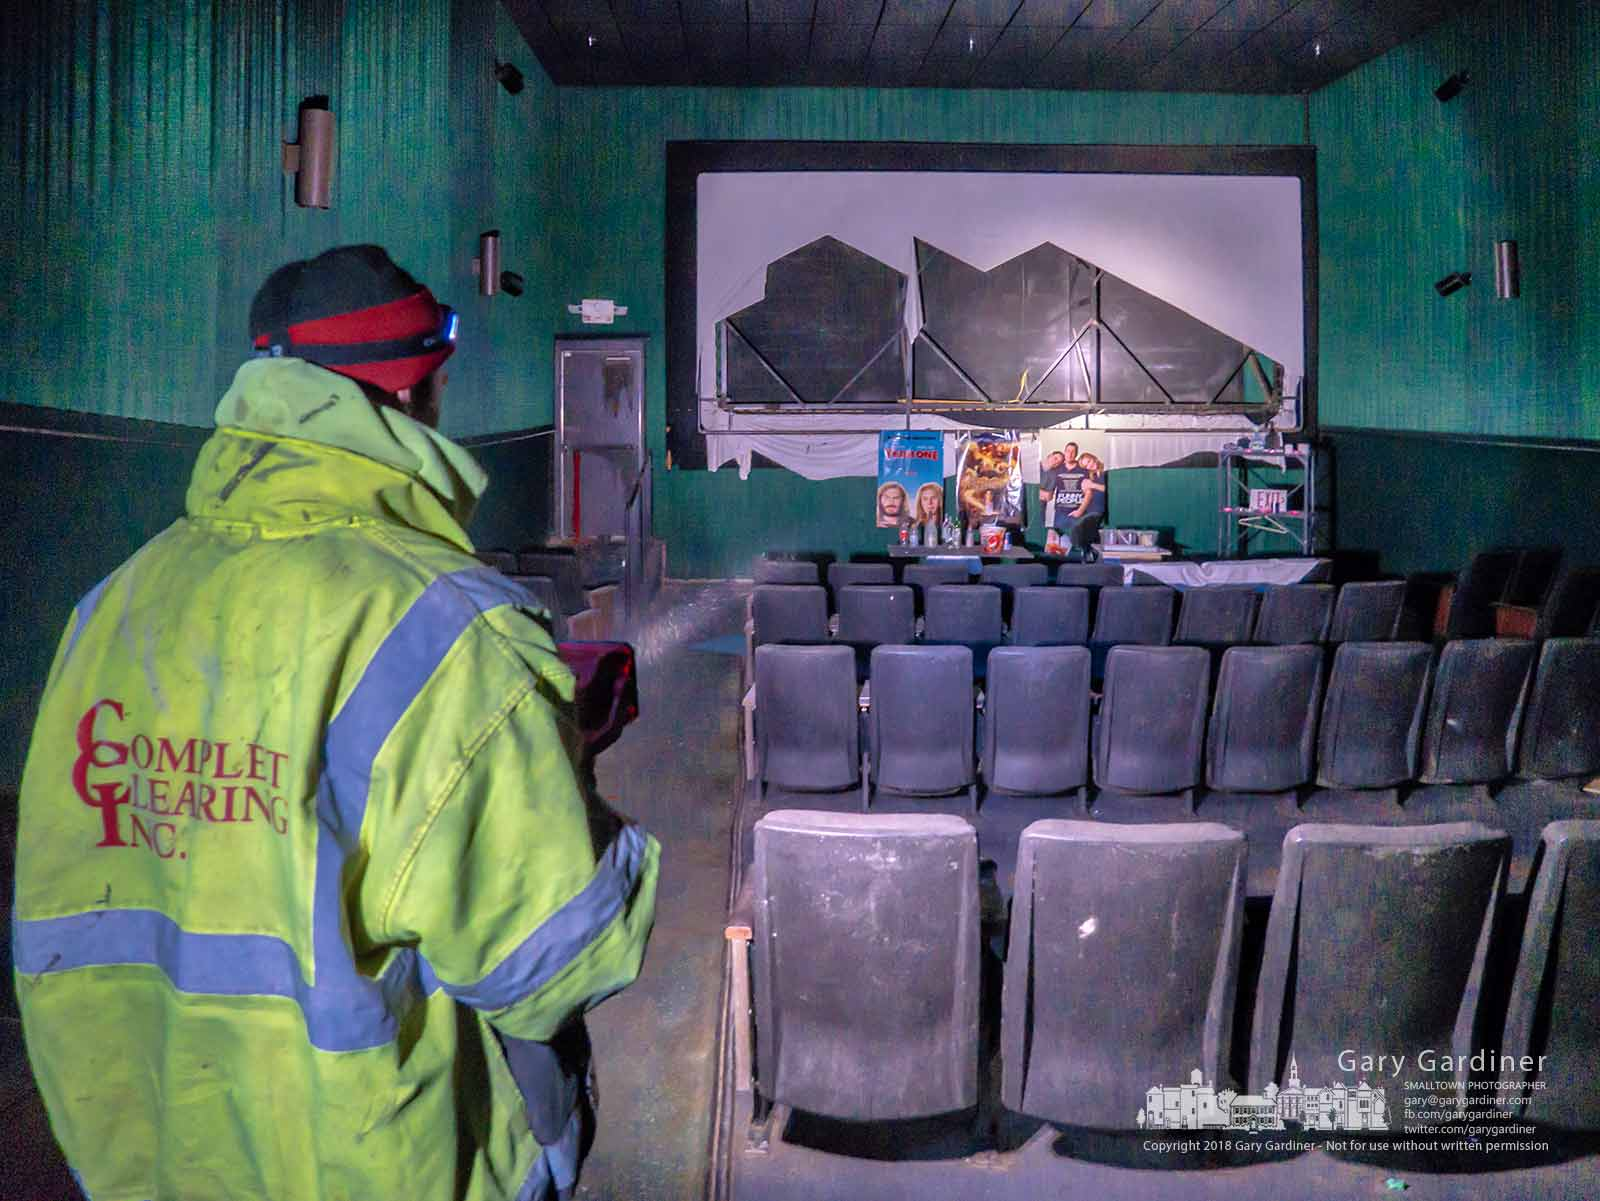 A demolition worker points out where trespassers had organized a meeting room in one of the abandoned theaters at the Hollywood Studio Theaters in Glengary Shopping Center. My Final Photo for April 17, 2018.